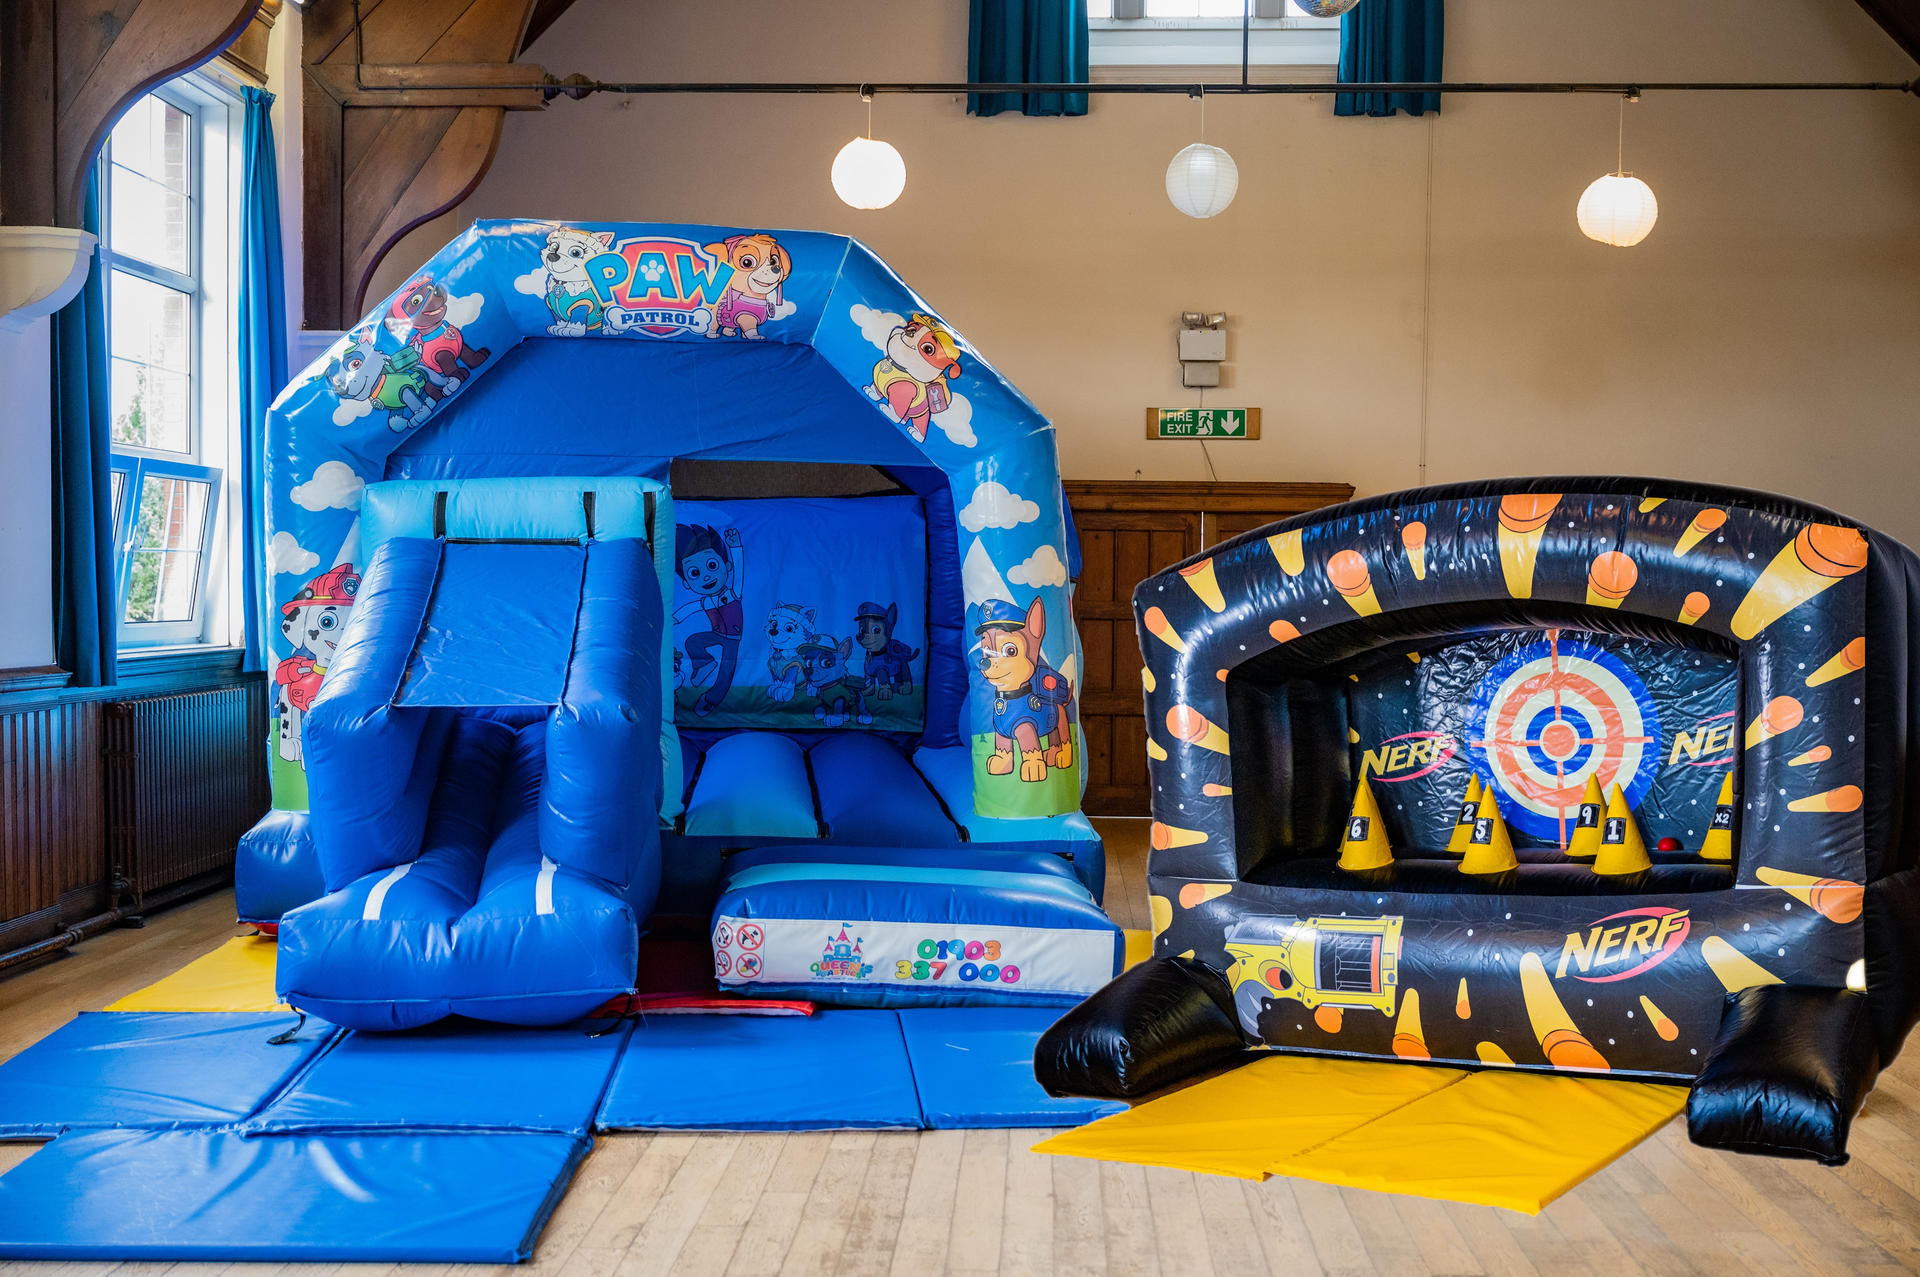 Slide Combo and Nerf shooter - £110